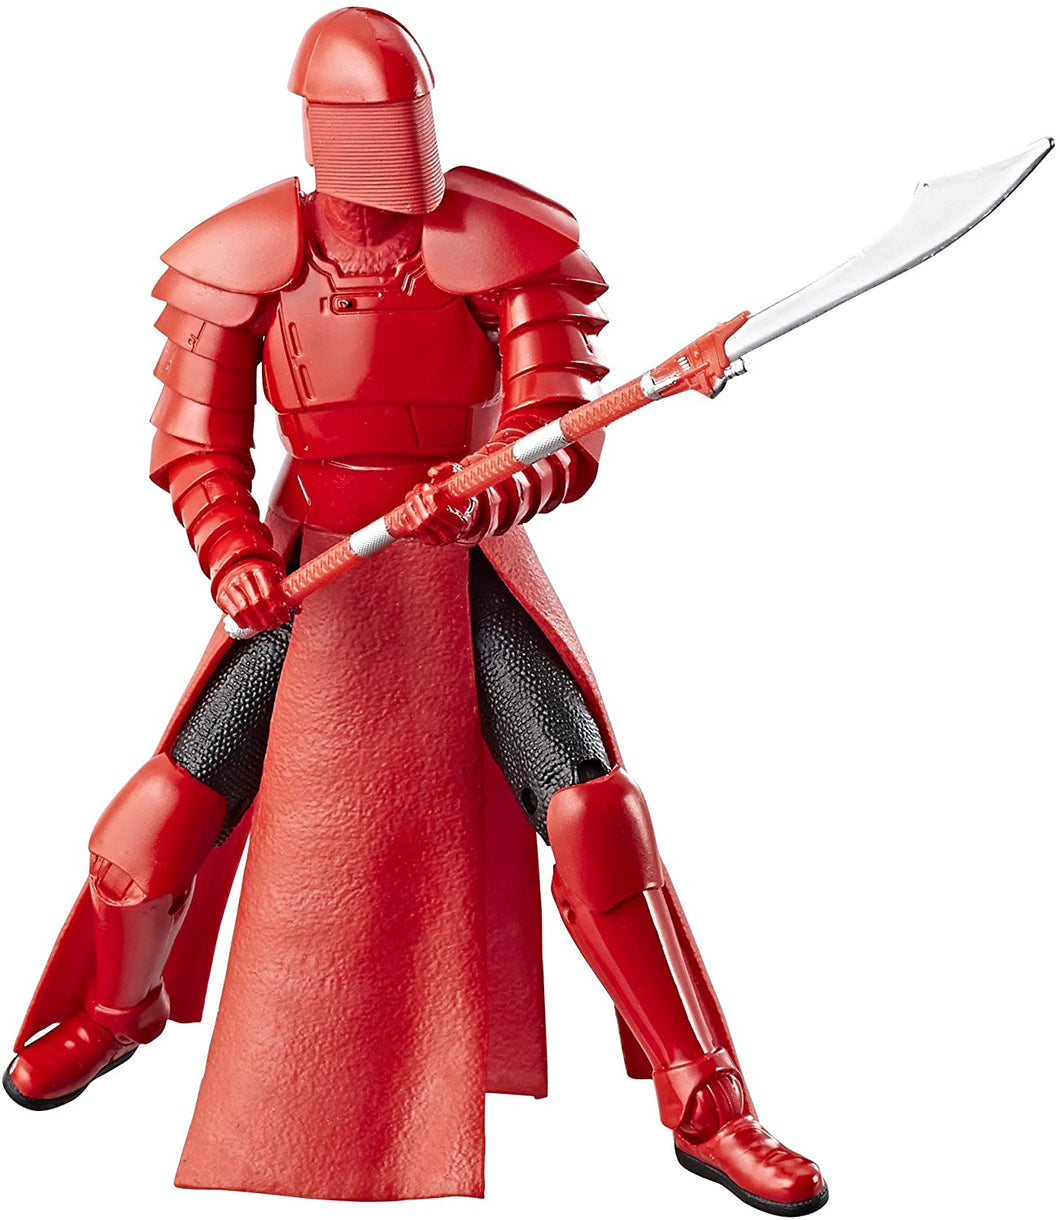 Star Wars The Black Series Episode 8 Elite Praetorian Guard, 6-inch LOOSE